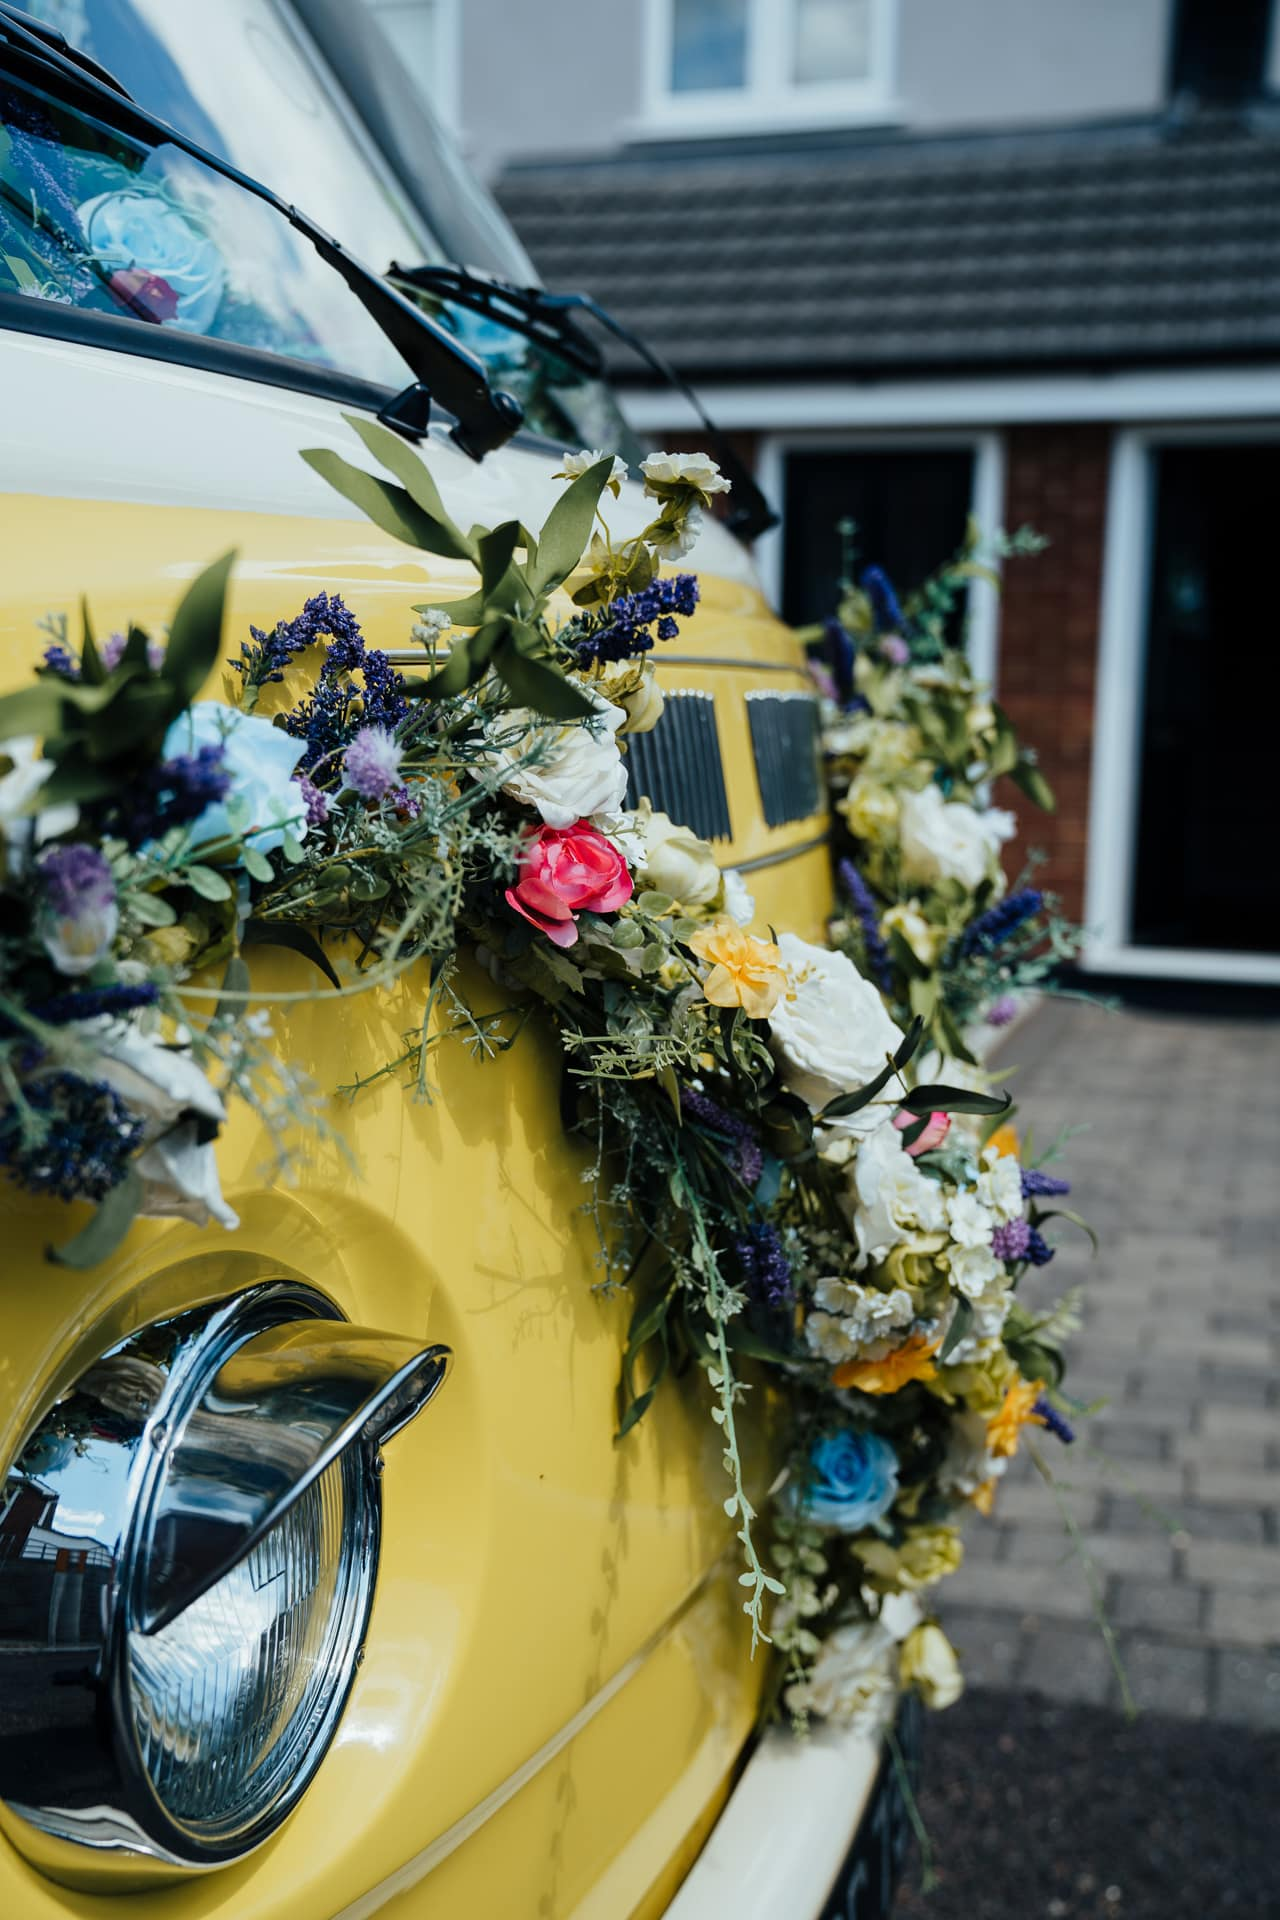 Yellow VW bus decorated with wedding flowers